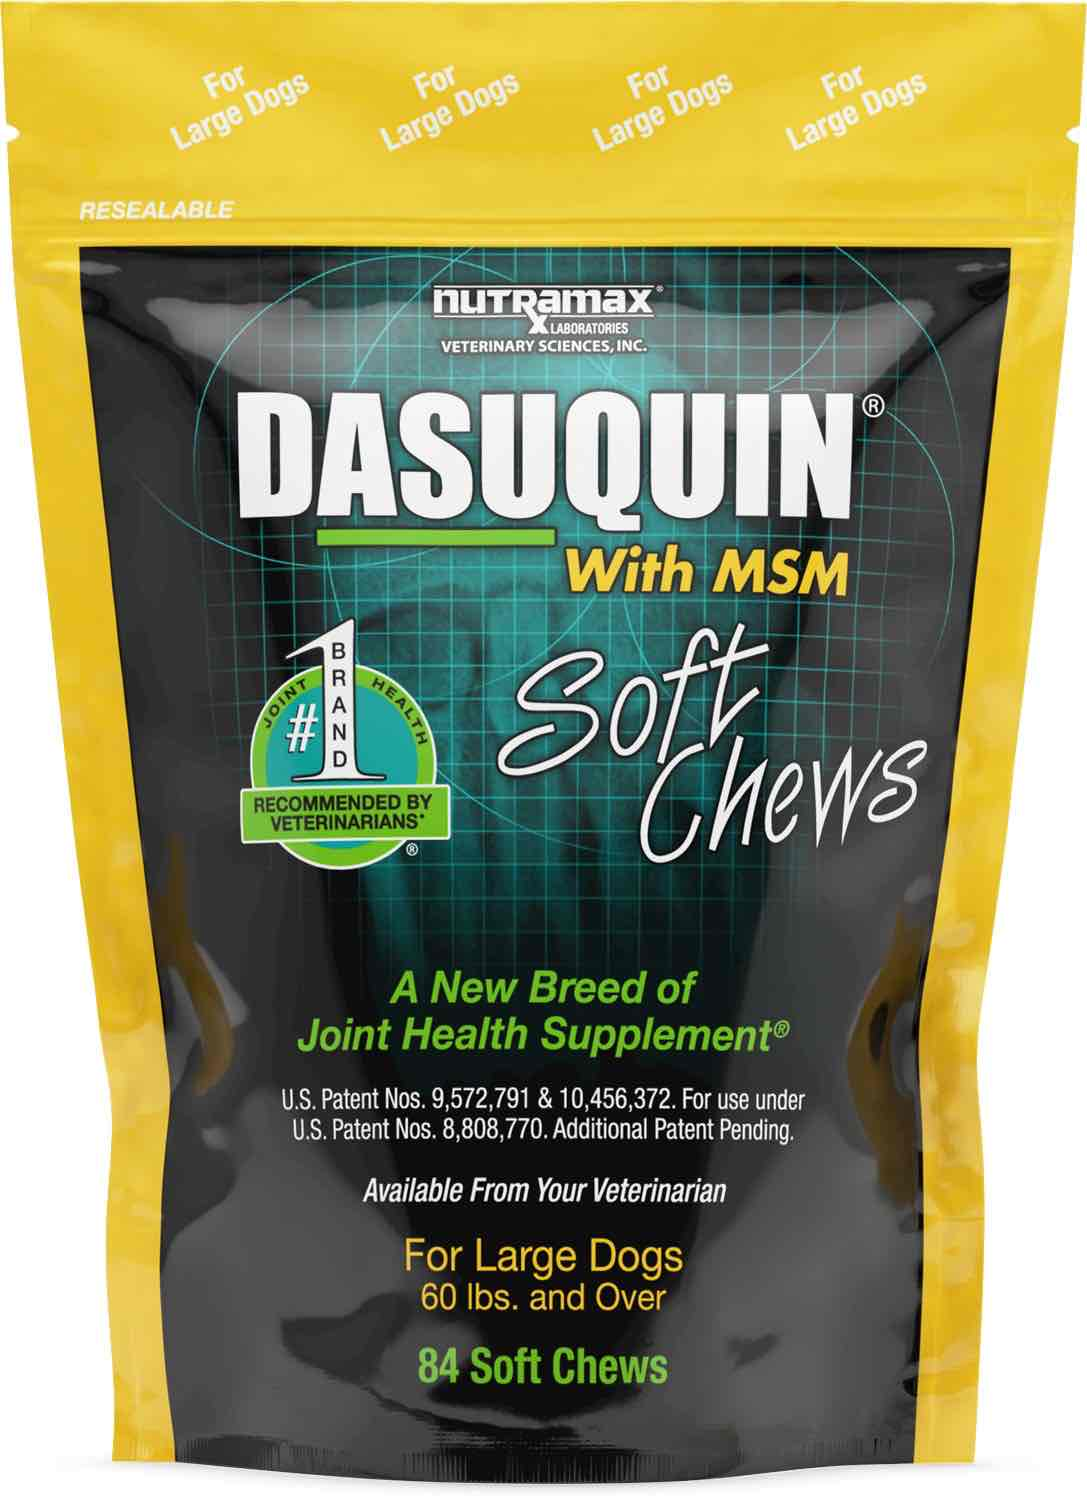 Dasuquin with MSM Soft Chews 84 count for large dogs 60 lbs and over 1